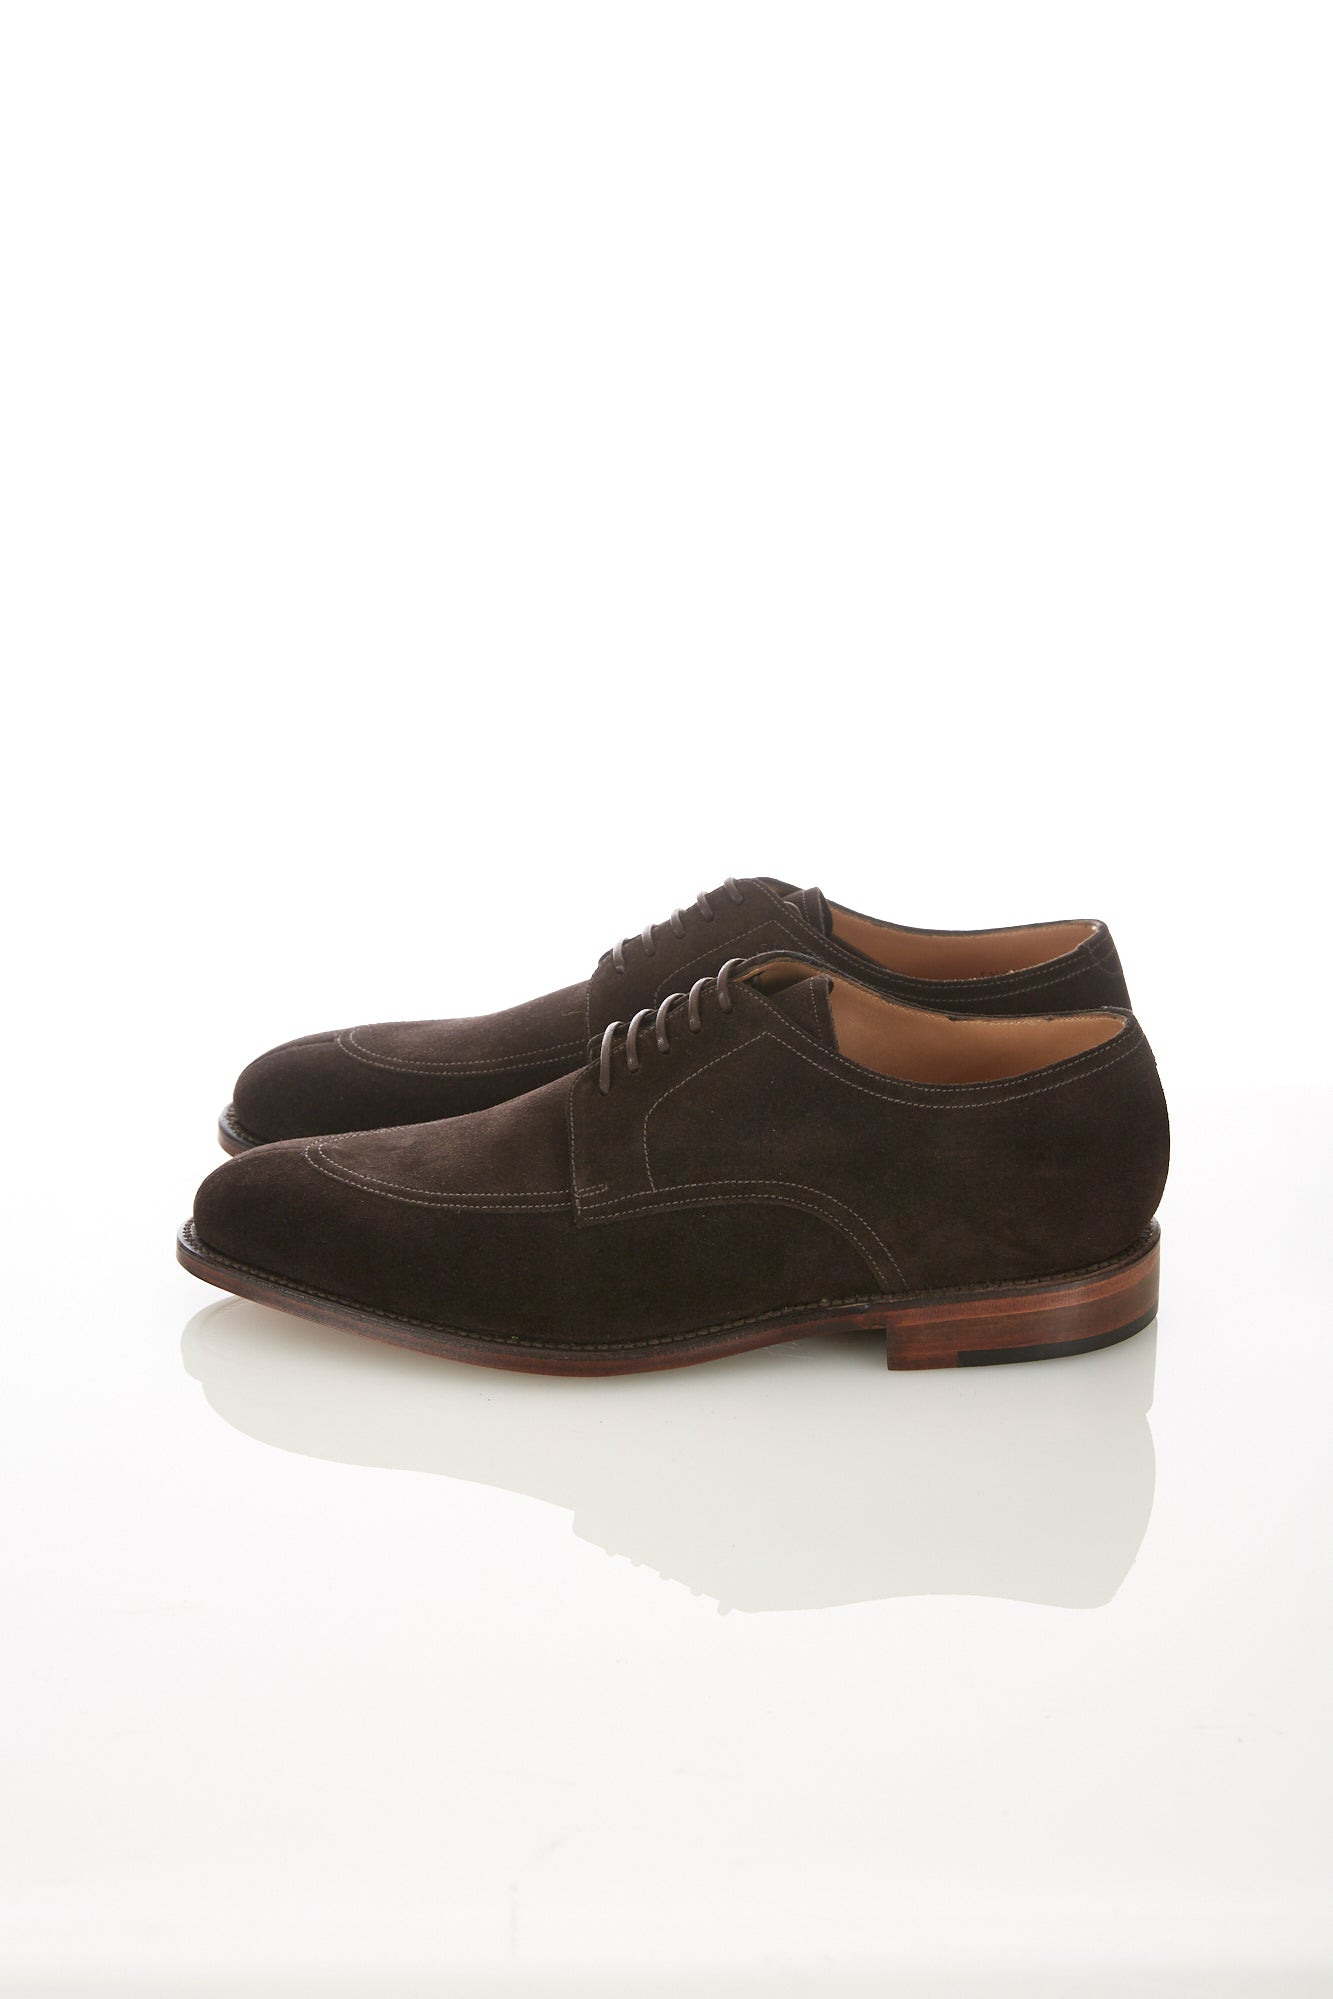 Loake 1880 Ealing Dark Brown Suede Split-Toe Shoe - Shoes - Loake - LALONDE's